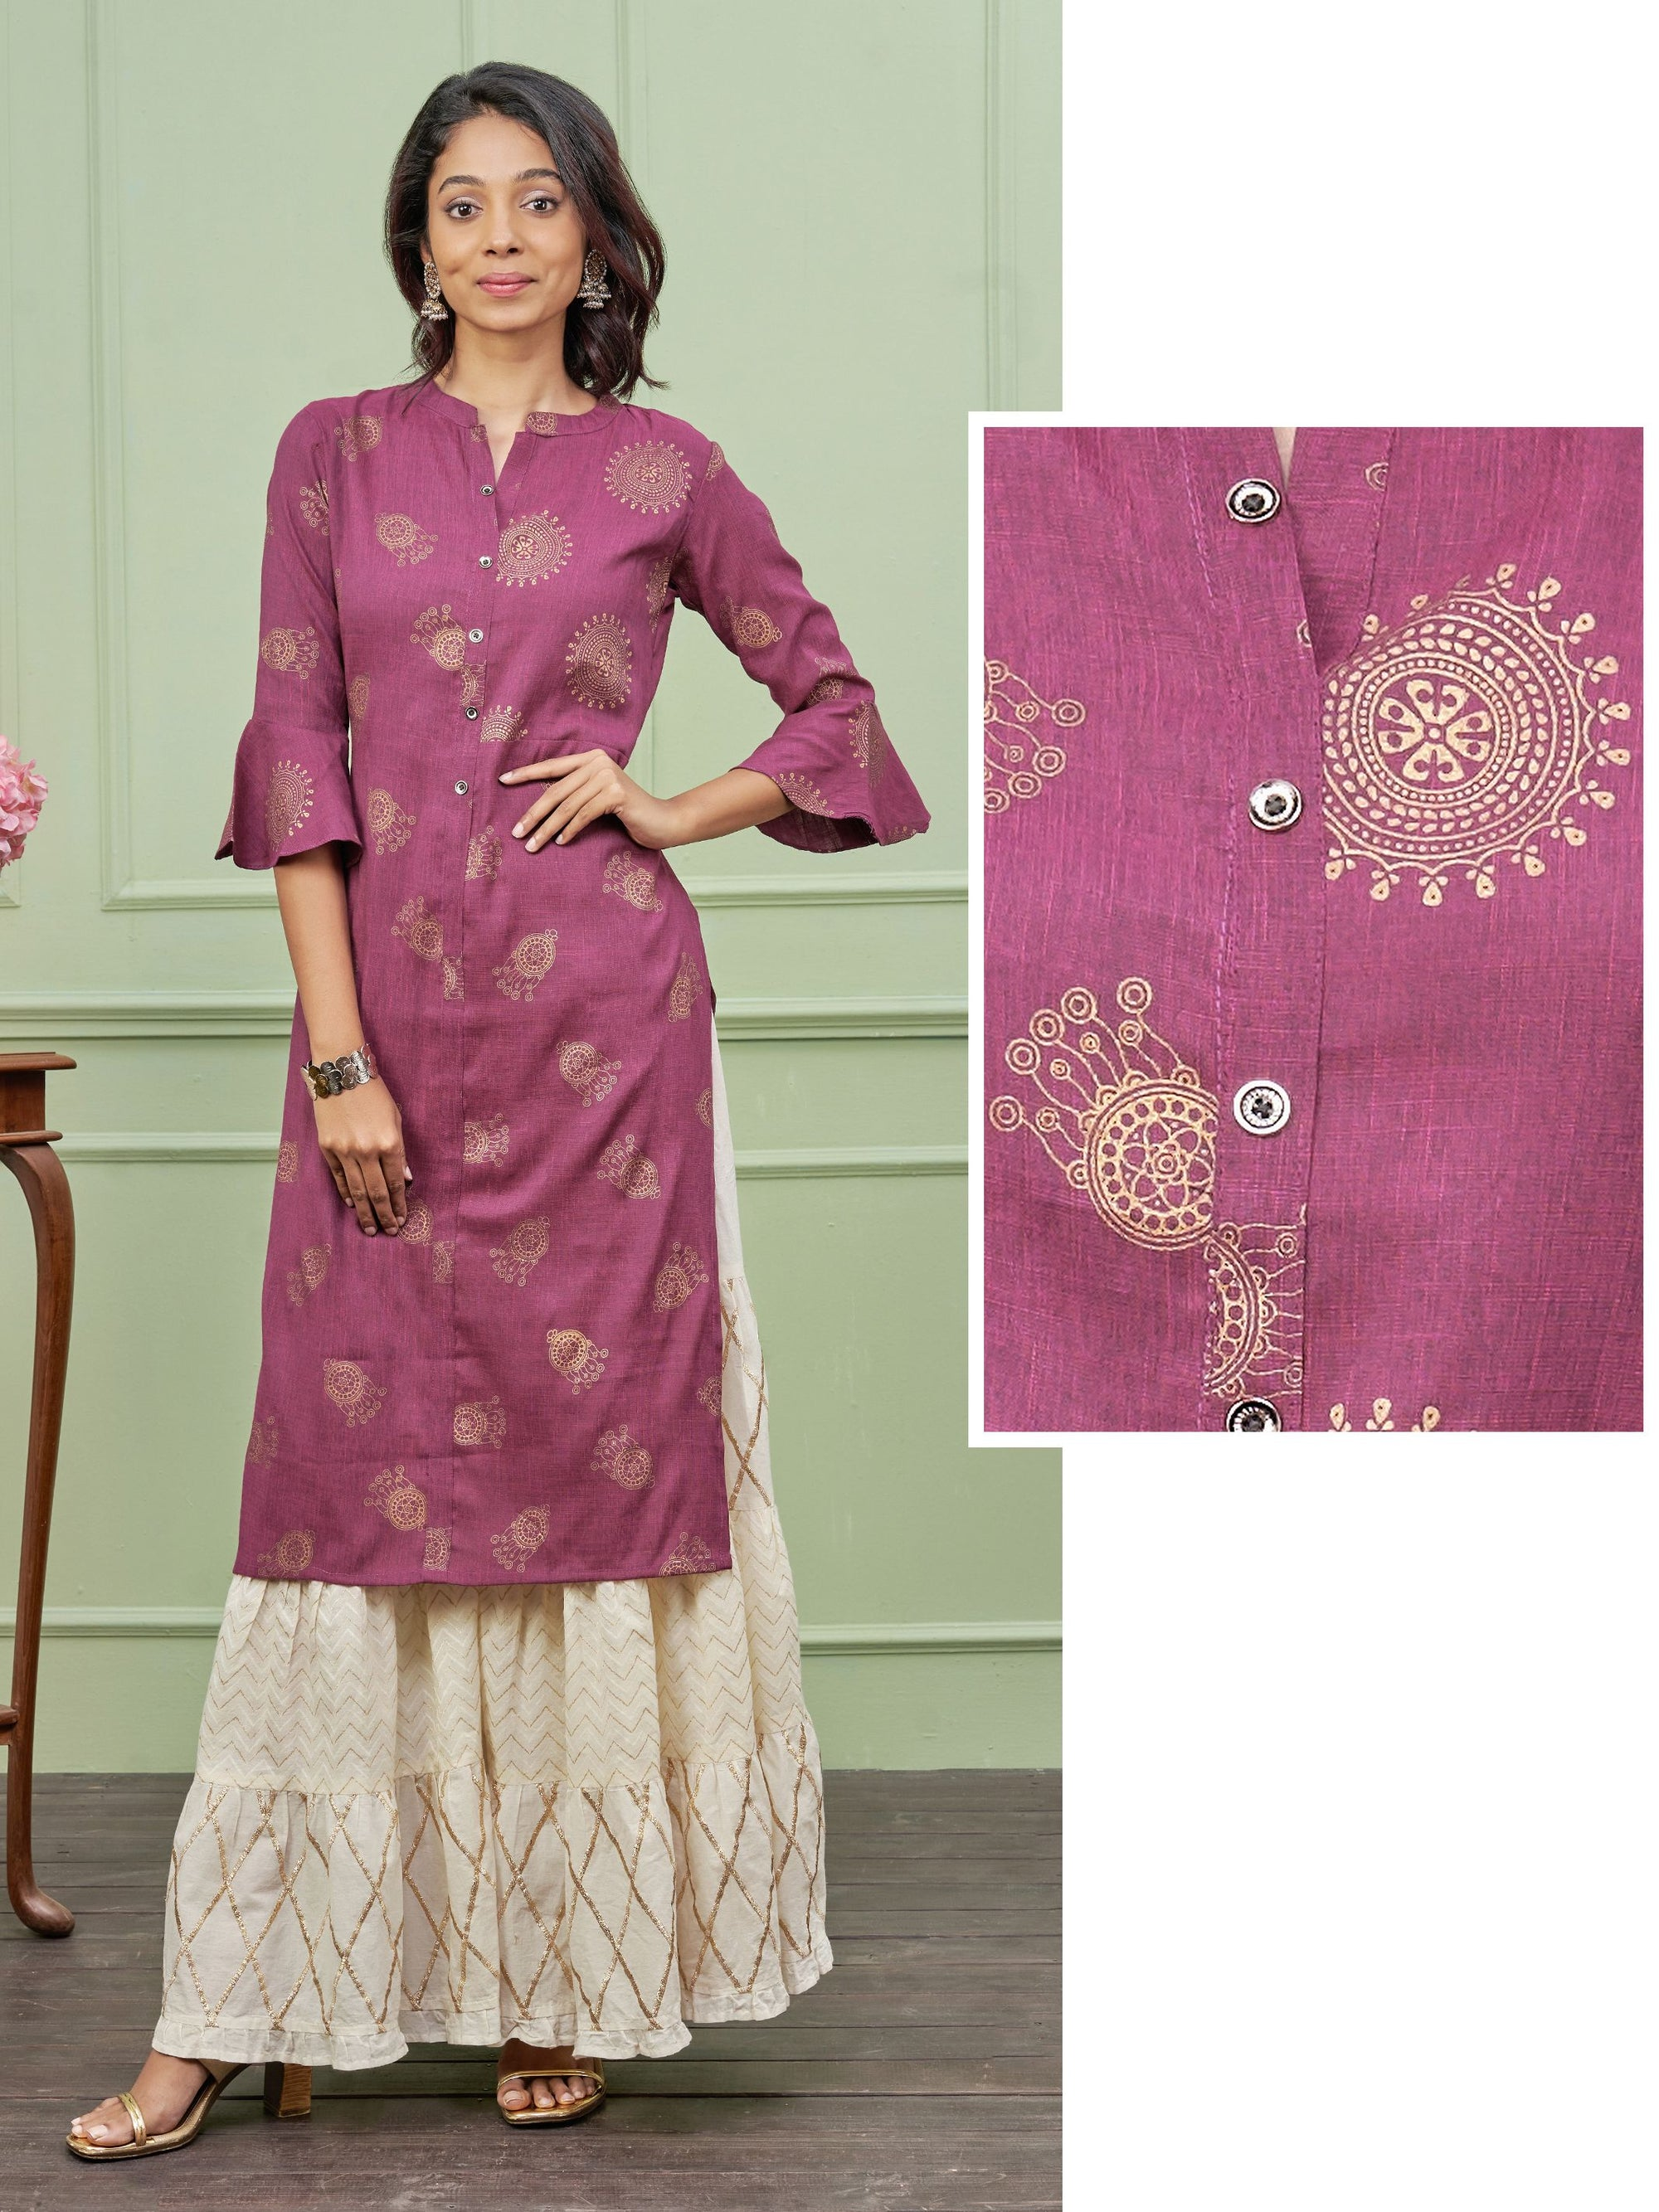 Dual Toned Motif & Dream Catcher Printed Cotton Kurti